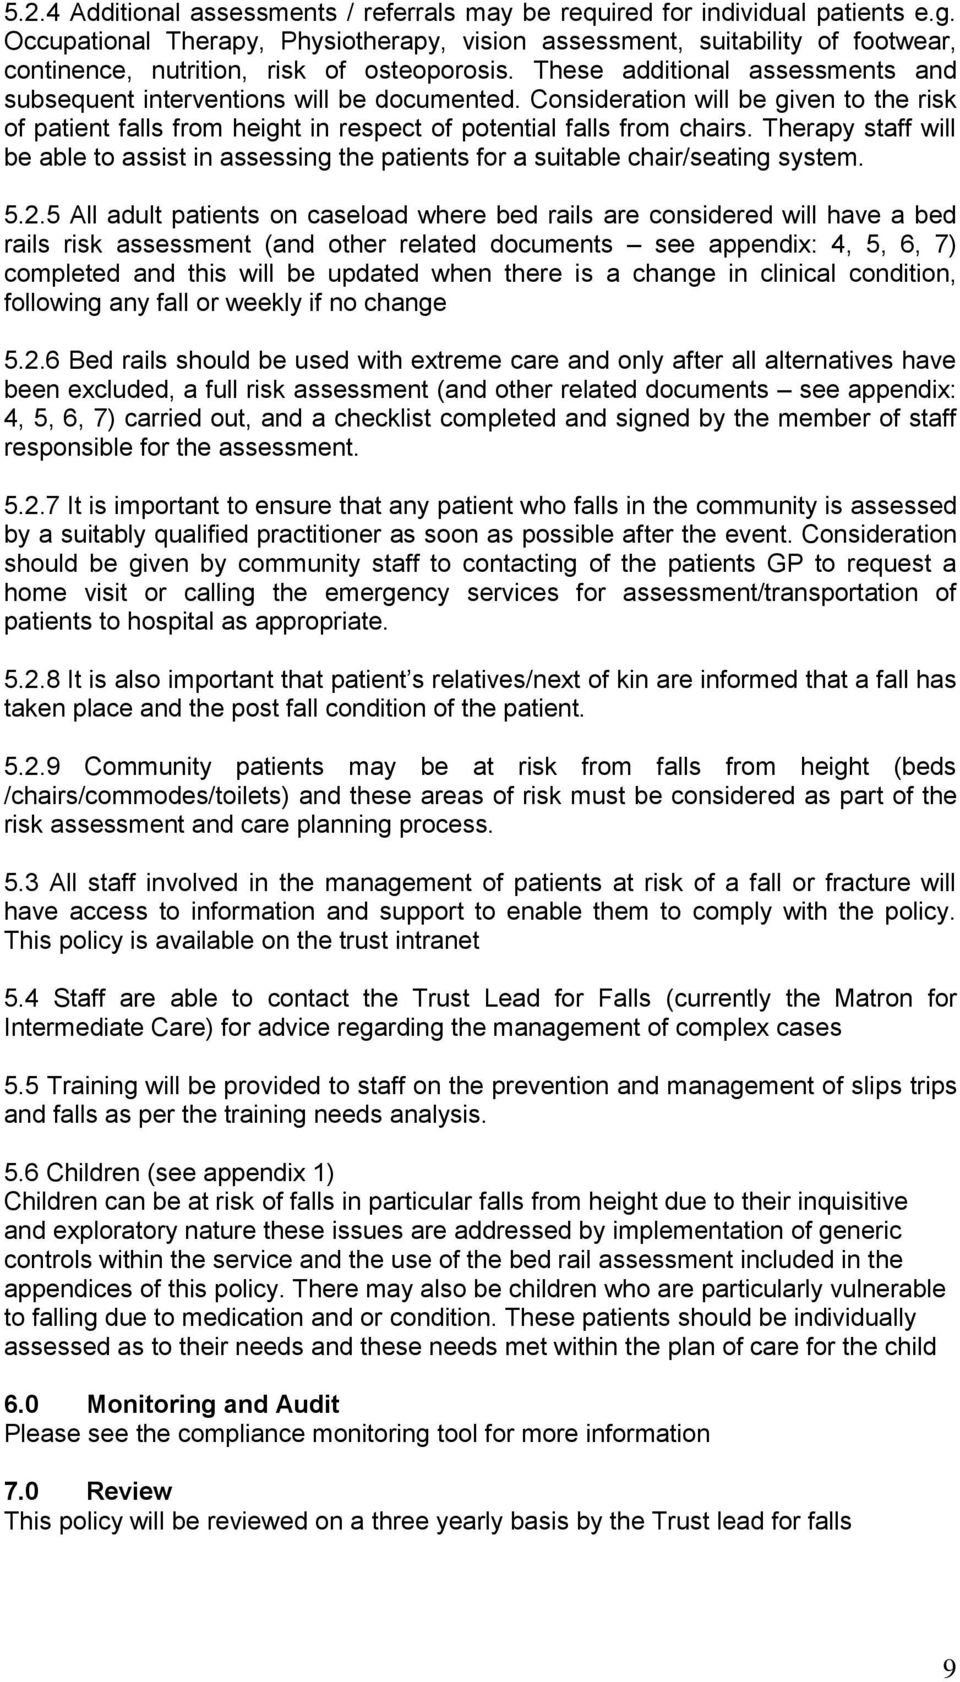 These additional assessments and subsequent interventions will be documented. Consideration will be given to the risk of patient falls from height in respect of potential falls from chairs.